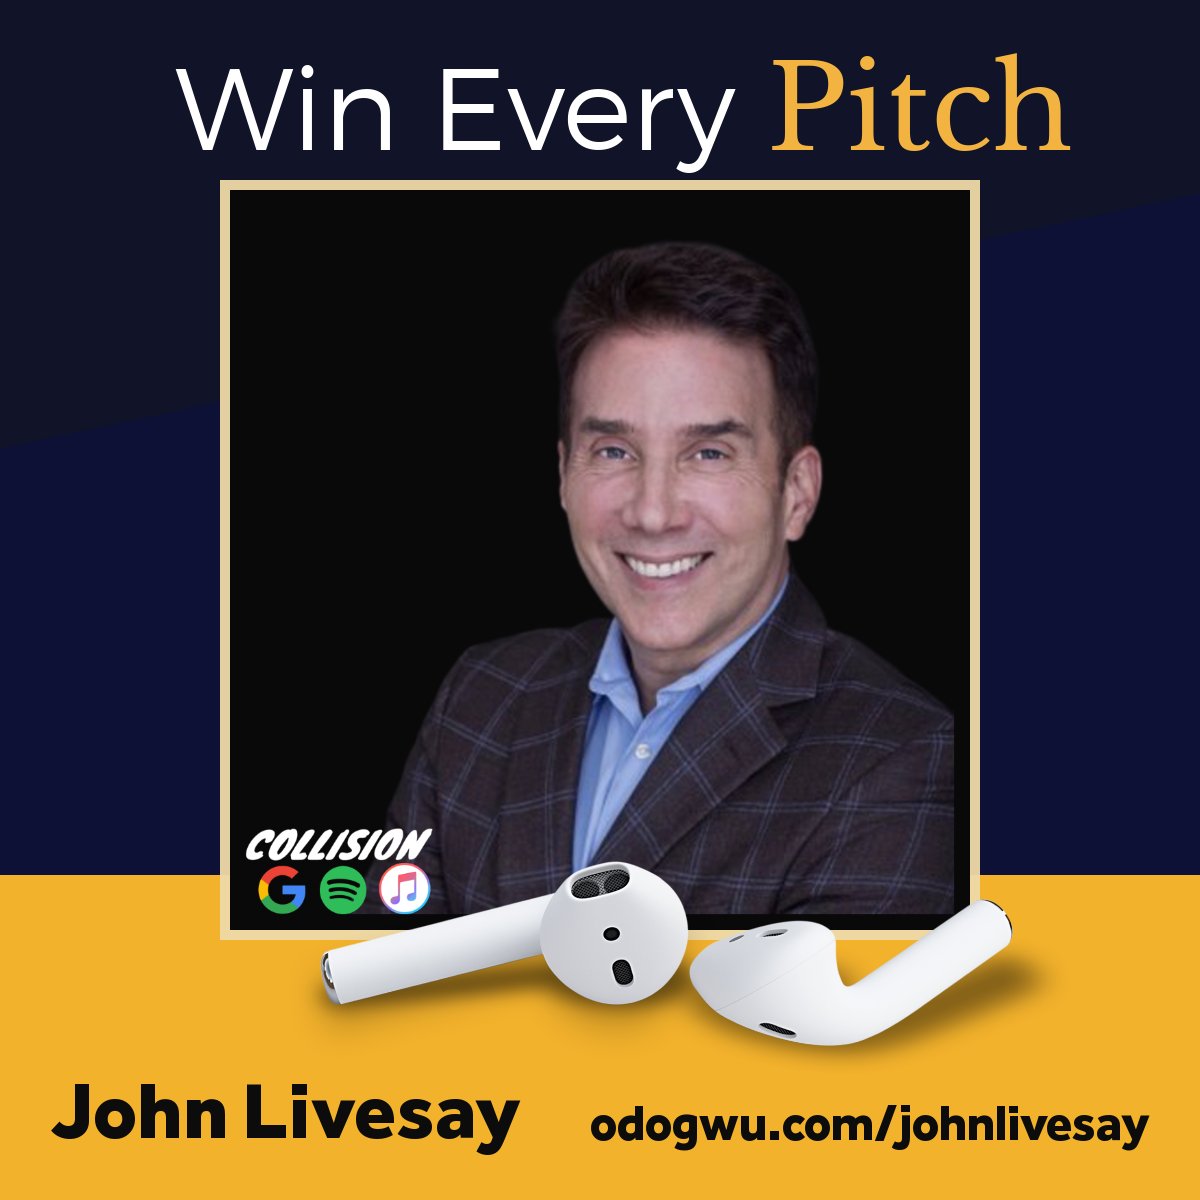 John Livesay Teaches You How To Win Every Pitch